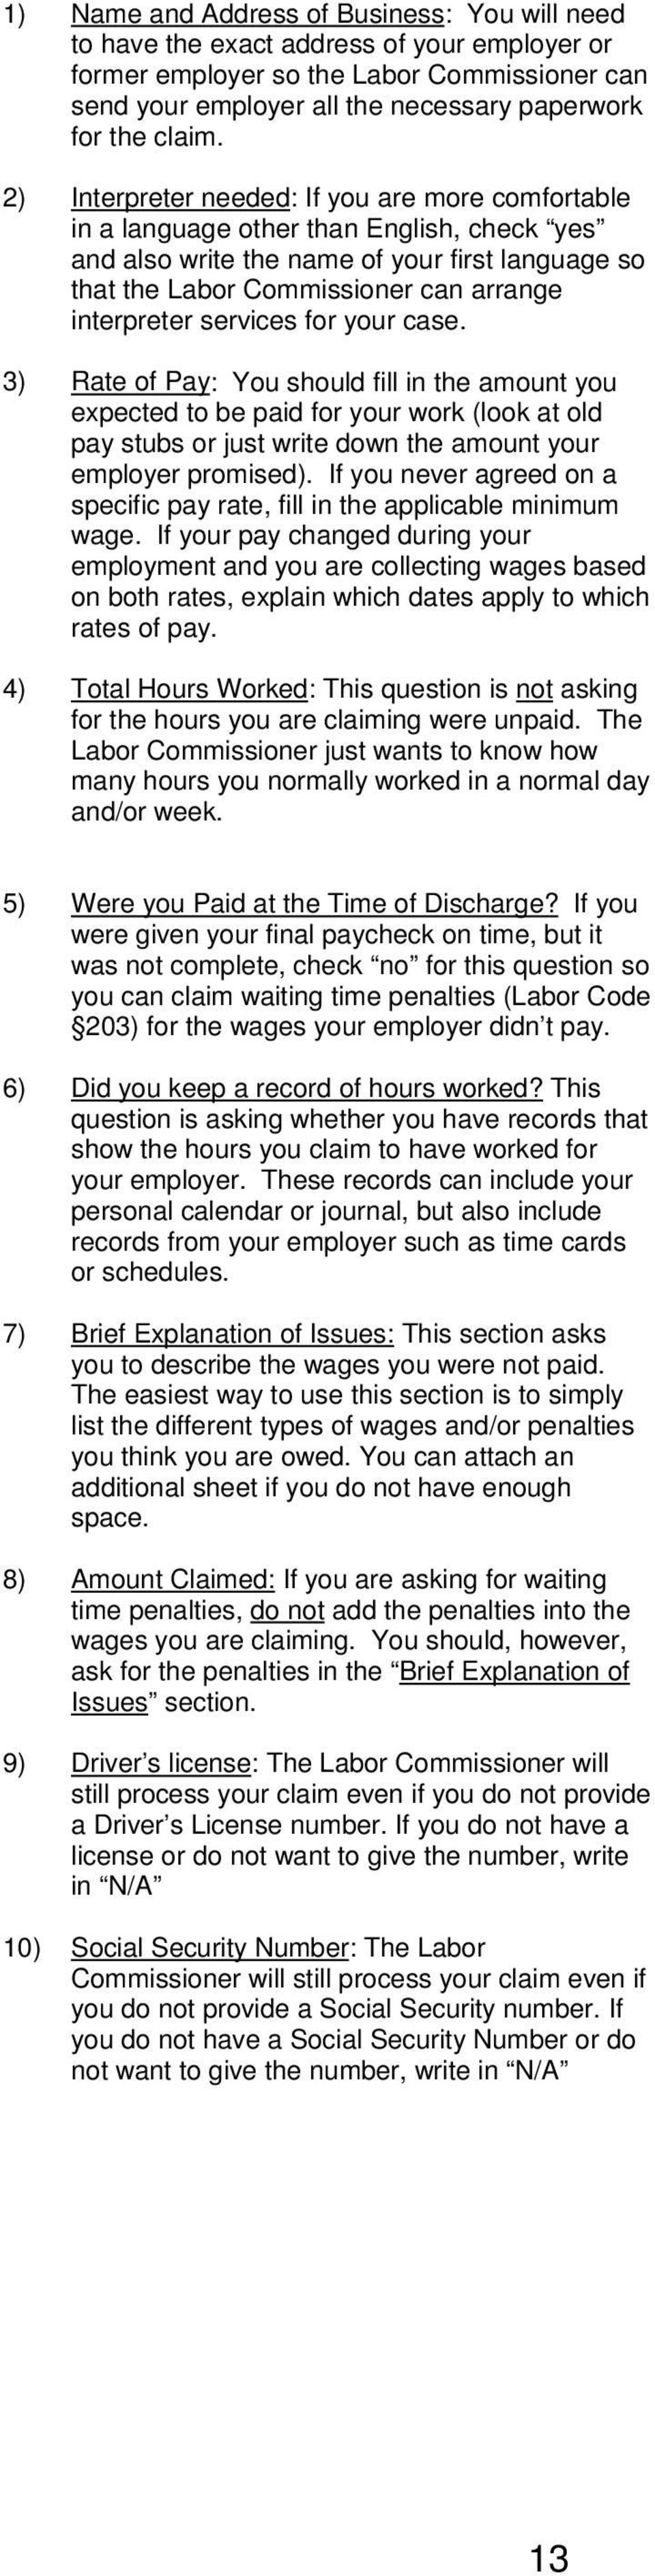 services for your case. 3) Rate of Pay: You should fill in the amount you expected to be paid for your work (look at old pay stubs or just write down the amount your employer promised).